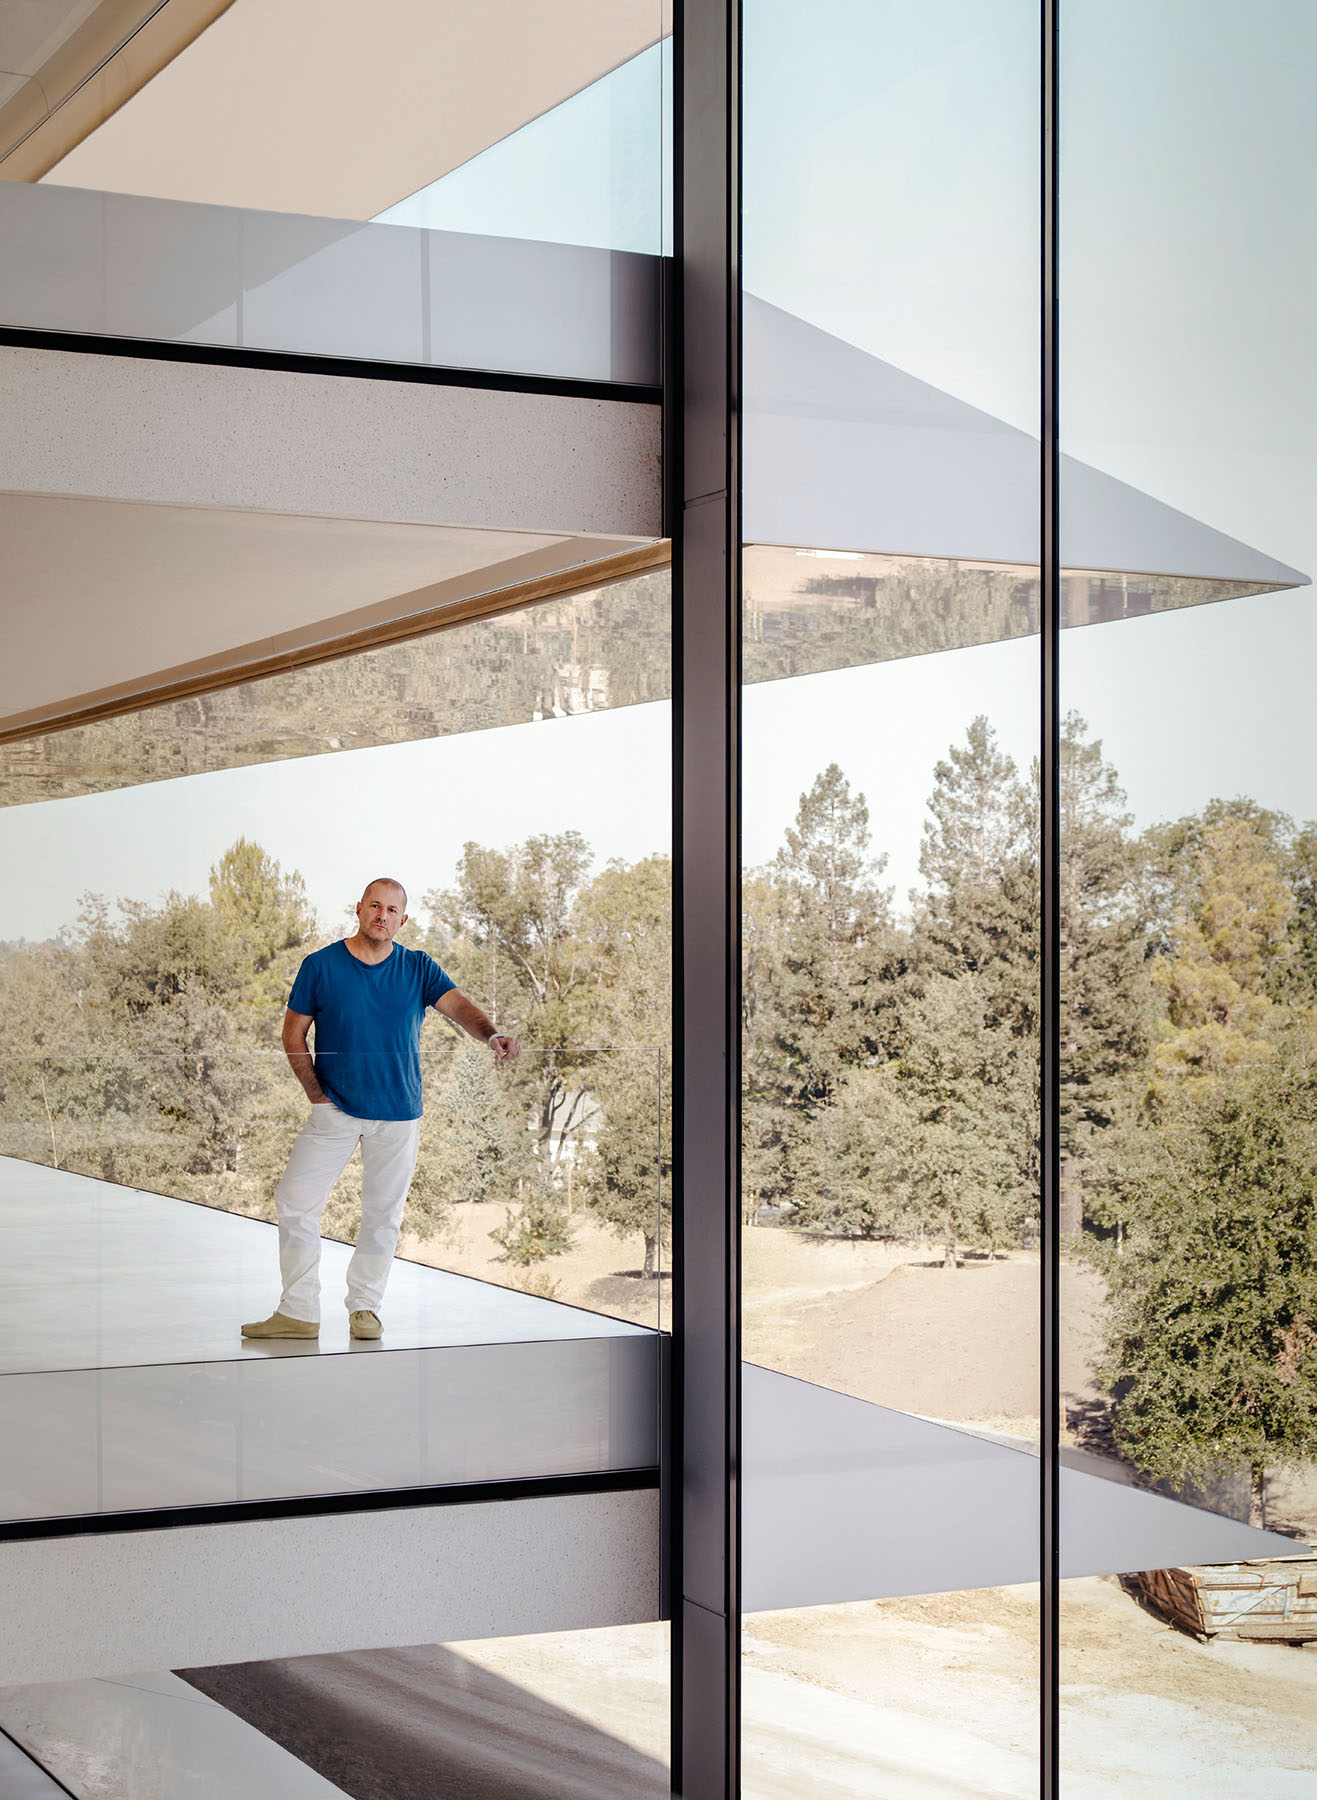 Apple's chief design officer Jony Ive in the Foster + Partner designed Cupertino headquarters